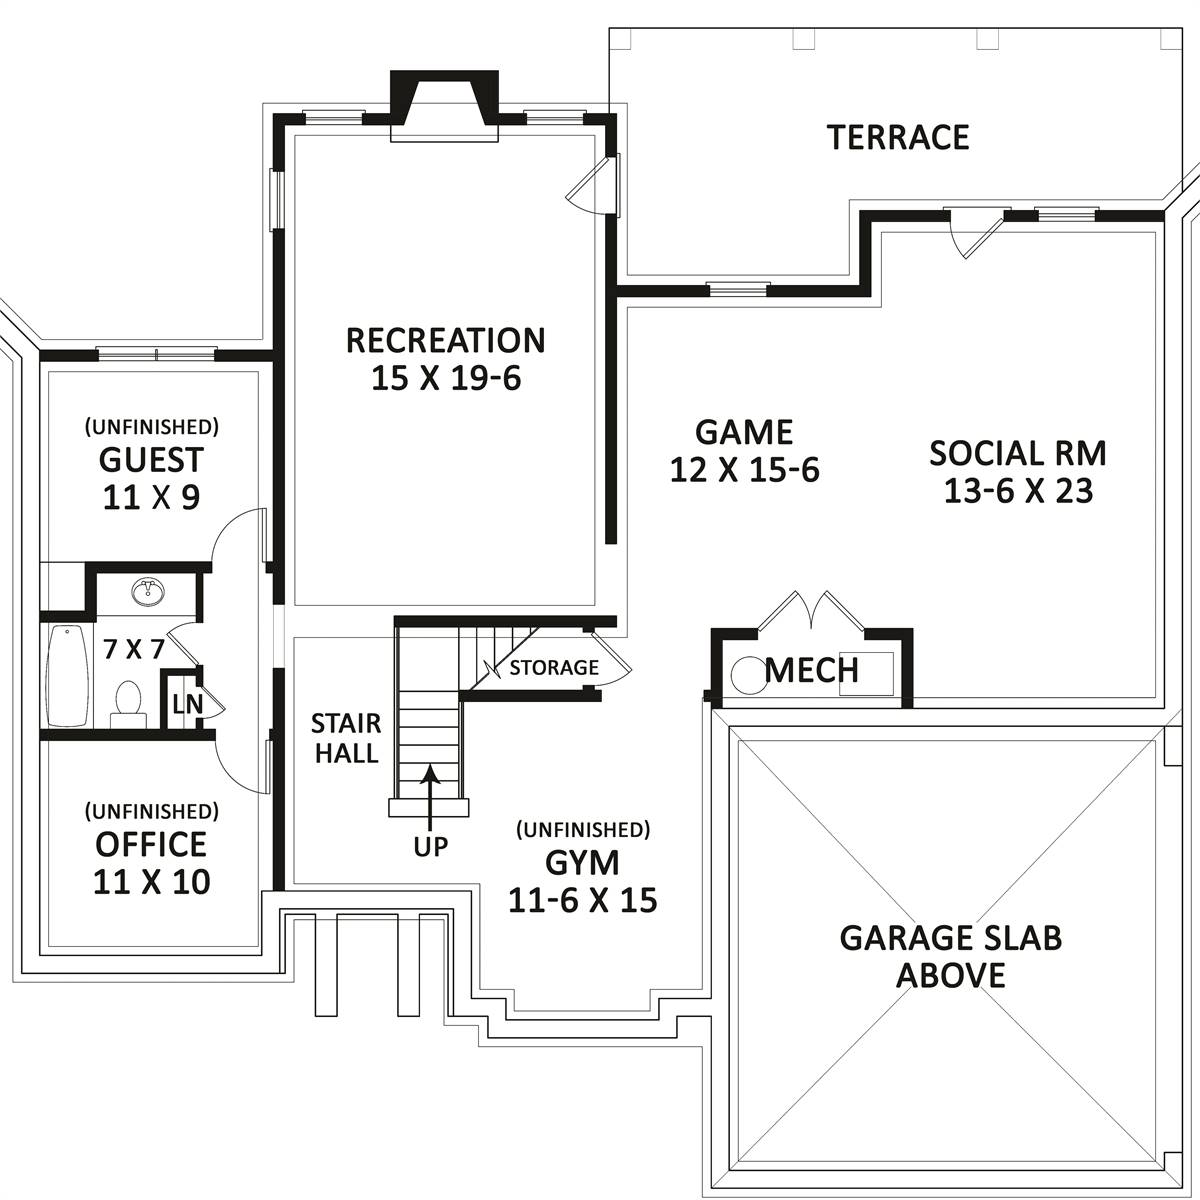 Basement Plan image of Featured House Plan: BHG - 8783